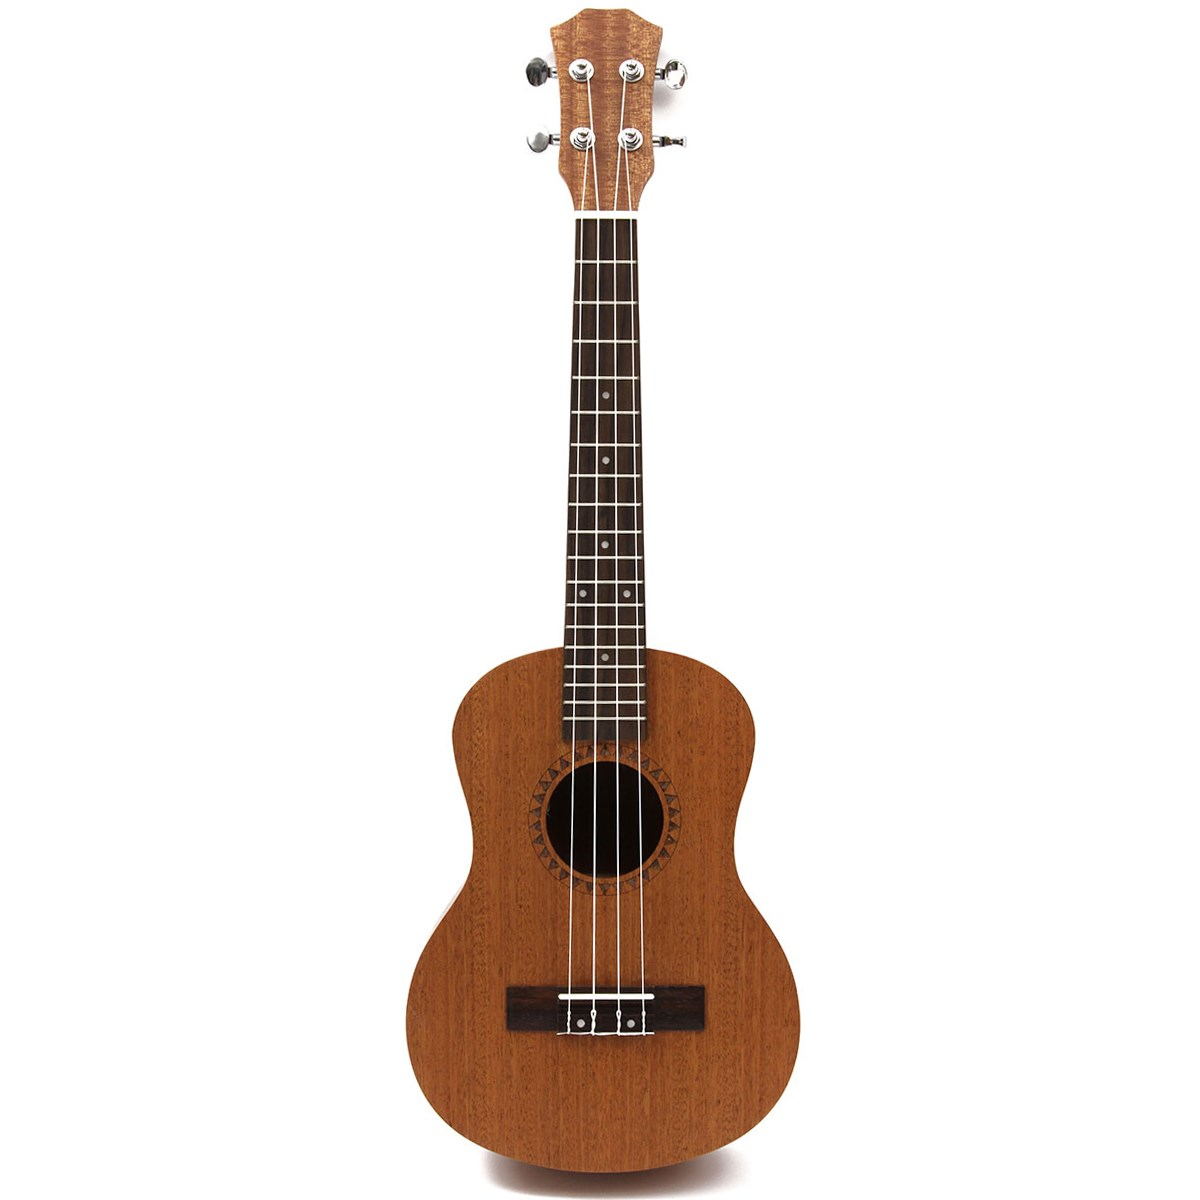 26 18 Fret Tenor Acoustic Electric Guitar Guitarra Hawaii Ukulele Ukelele For Bass Guitar Music Instrument Lovers 26 inchtenor ukulele guitar handcraft made of mahogany samll stringed guitarra ukelele hawaii uke musical instrument free bag